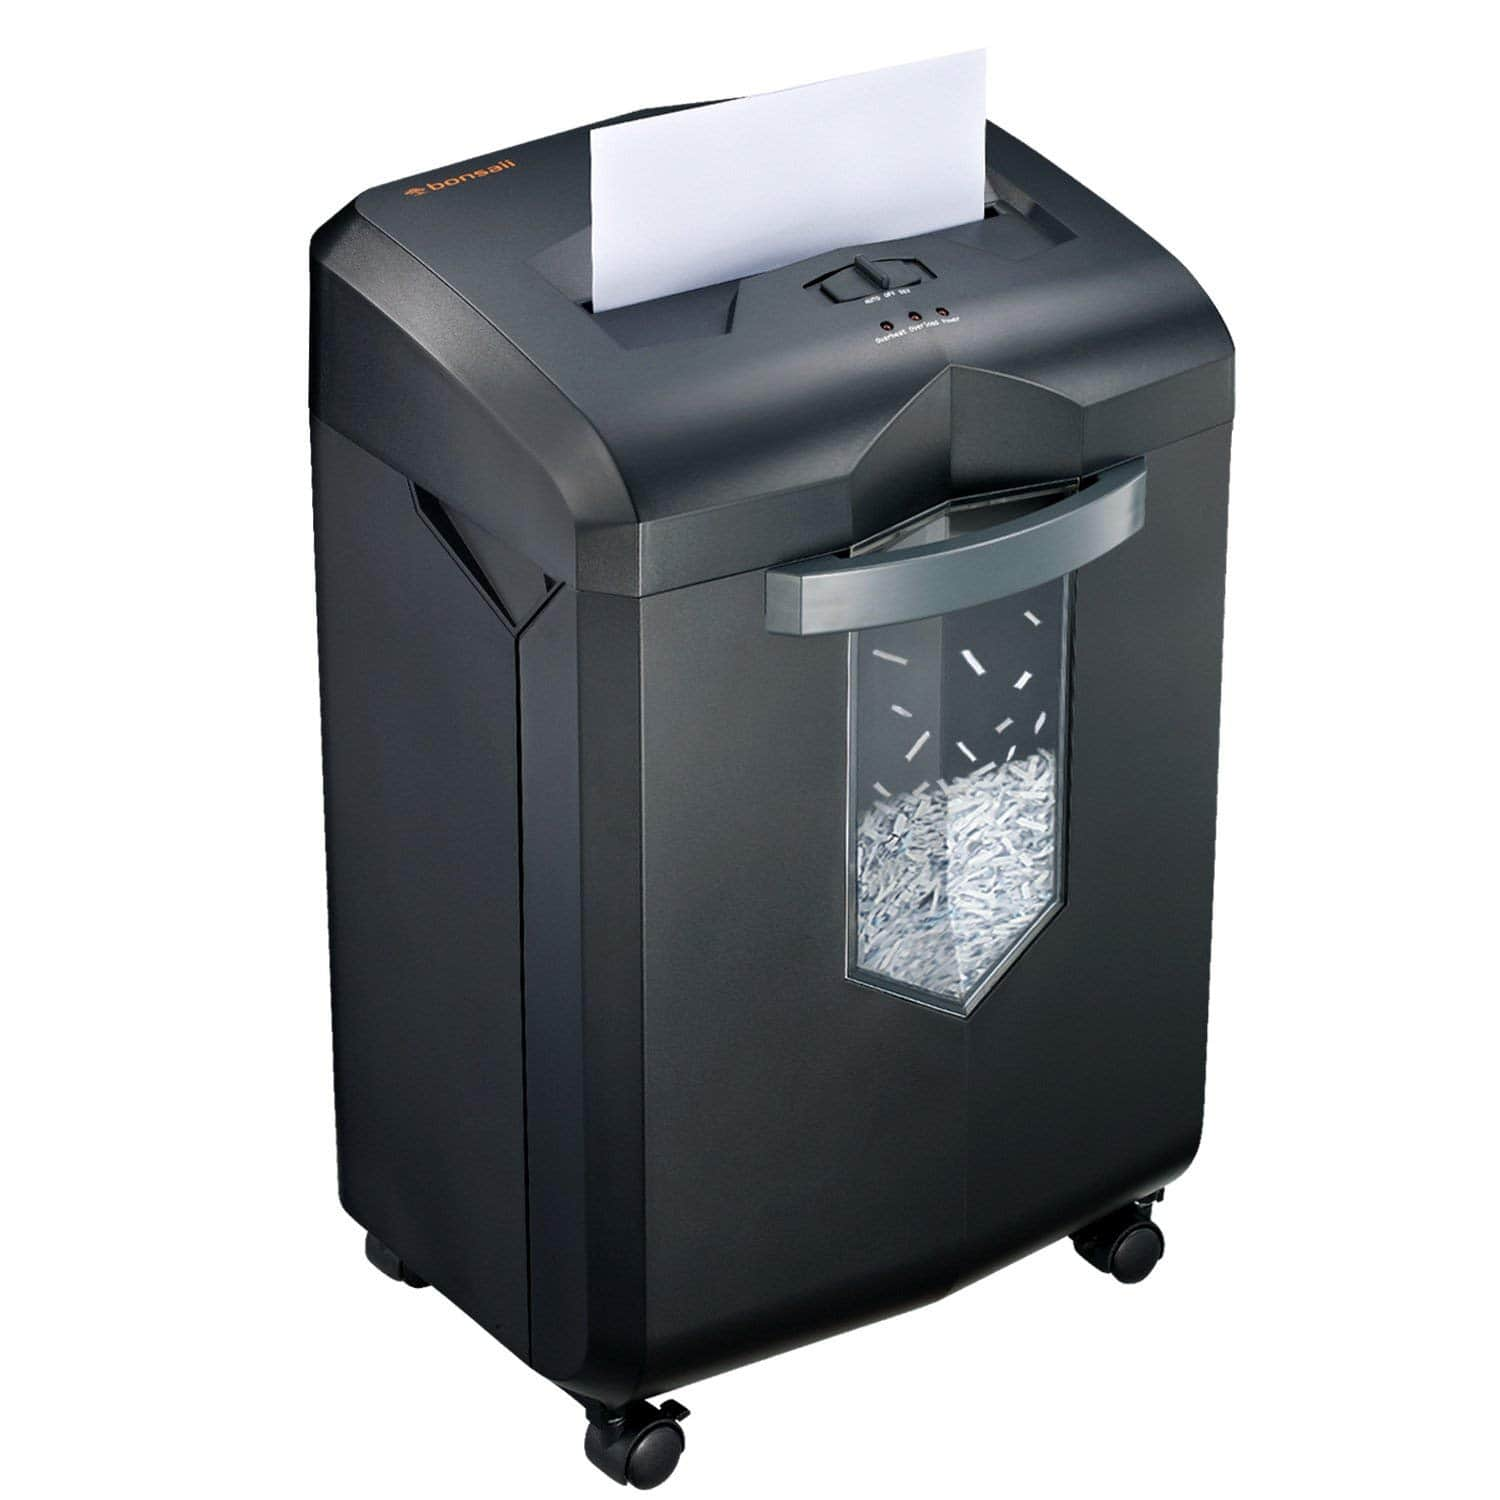 Bonsaii EverShred C149-C 18-Sheet Heavy Duty Cross-Cut Paper/CD/Credit Card Shredder with 6 Gallon Pullout Basket and 4 Casters, 60 Minutes Running Time, Black - $138.60 + FS